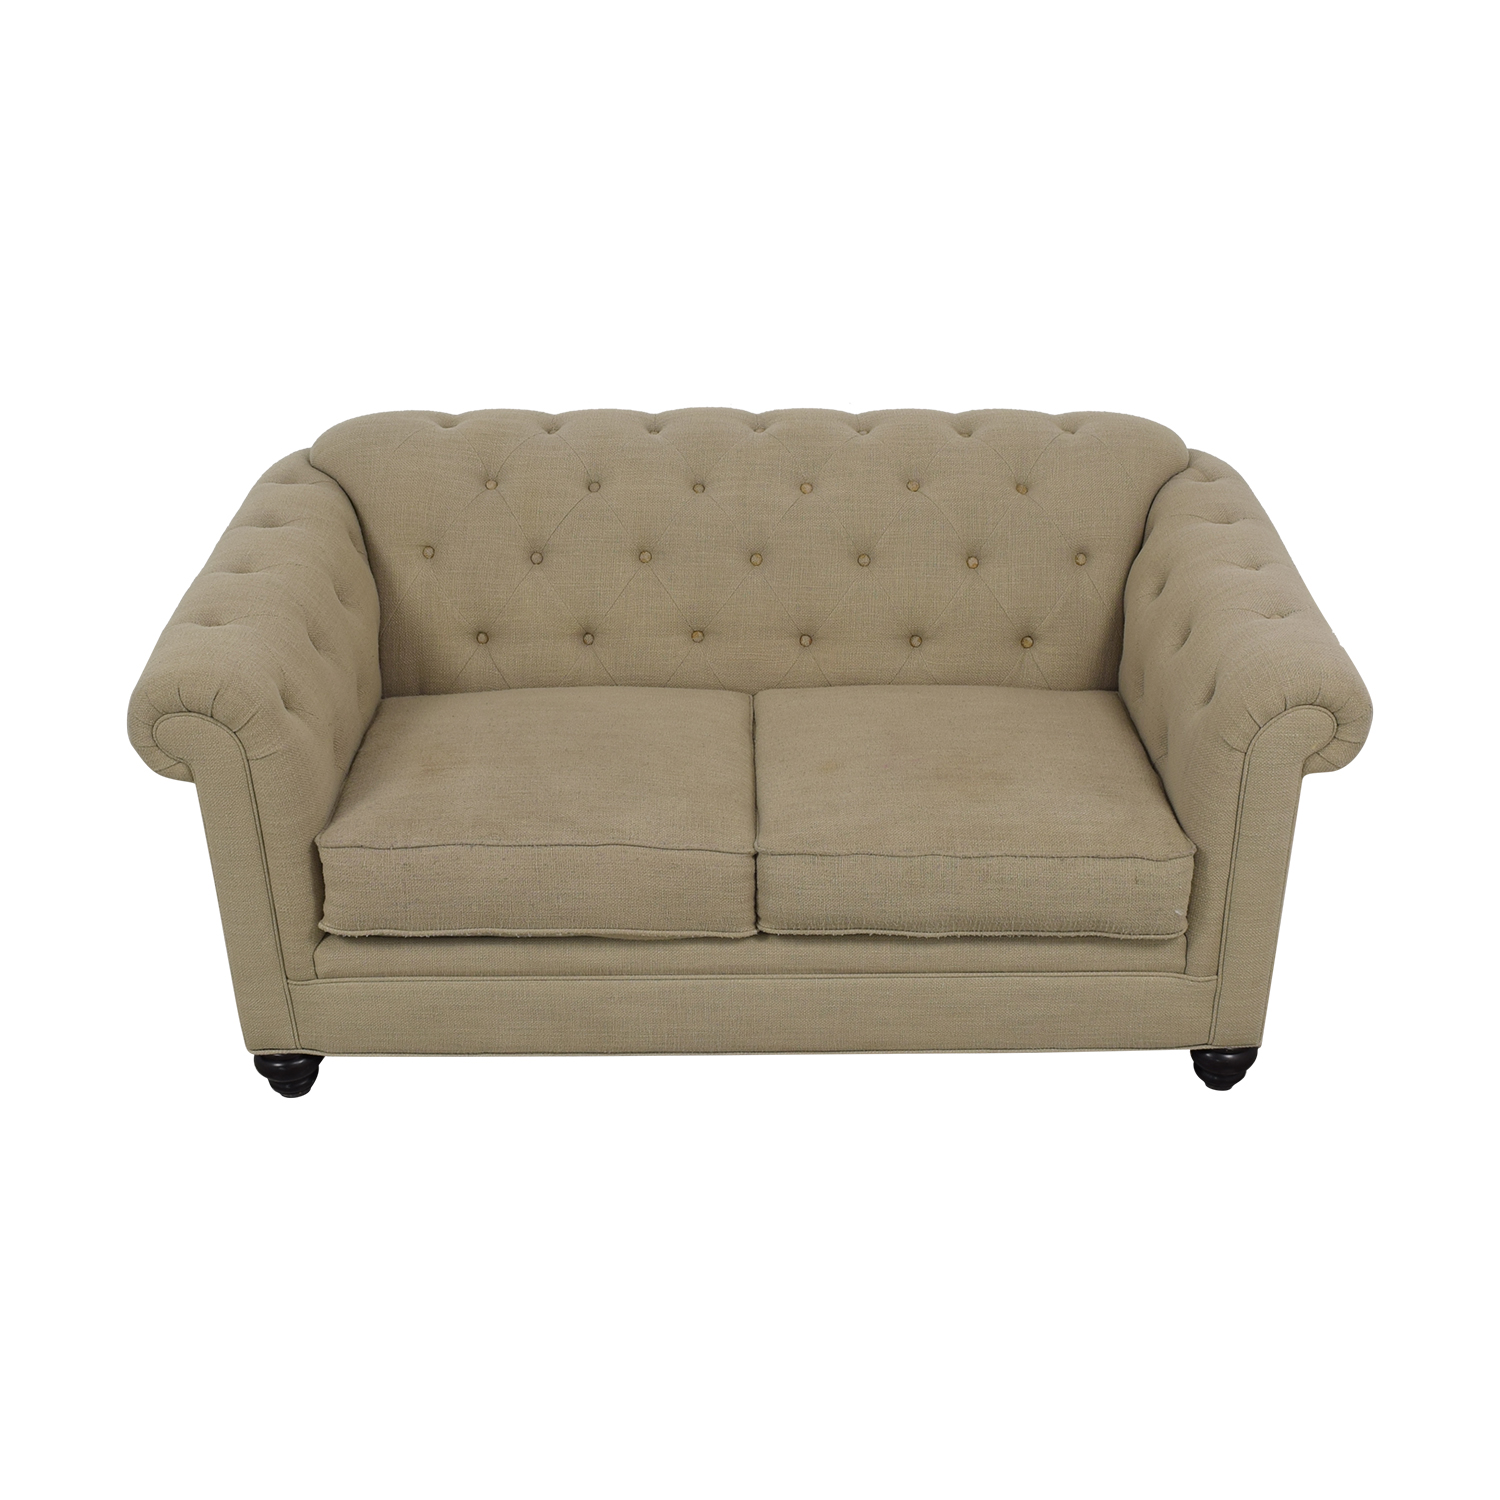 Jonathan Louis Jonathan Louis Cambridge Loveseat price